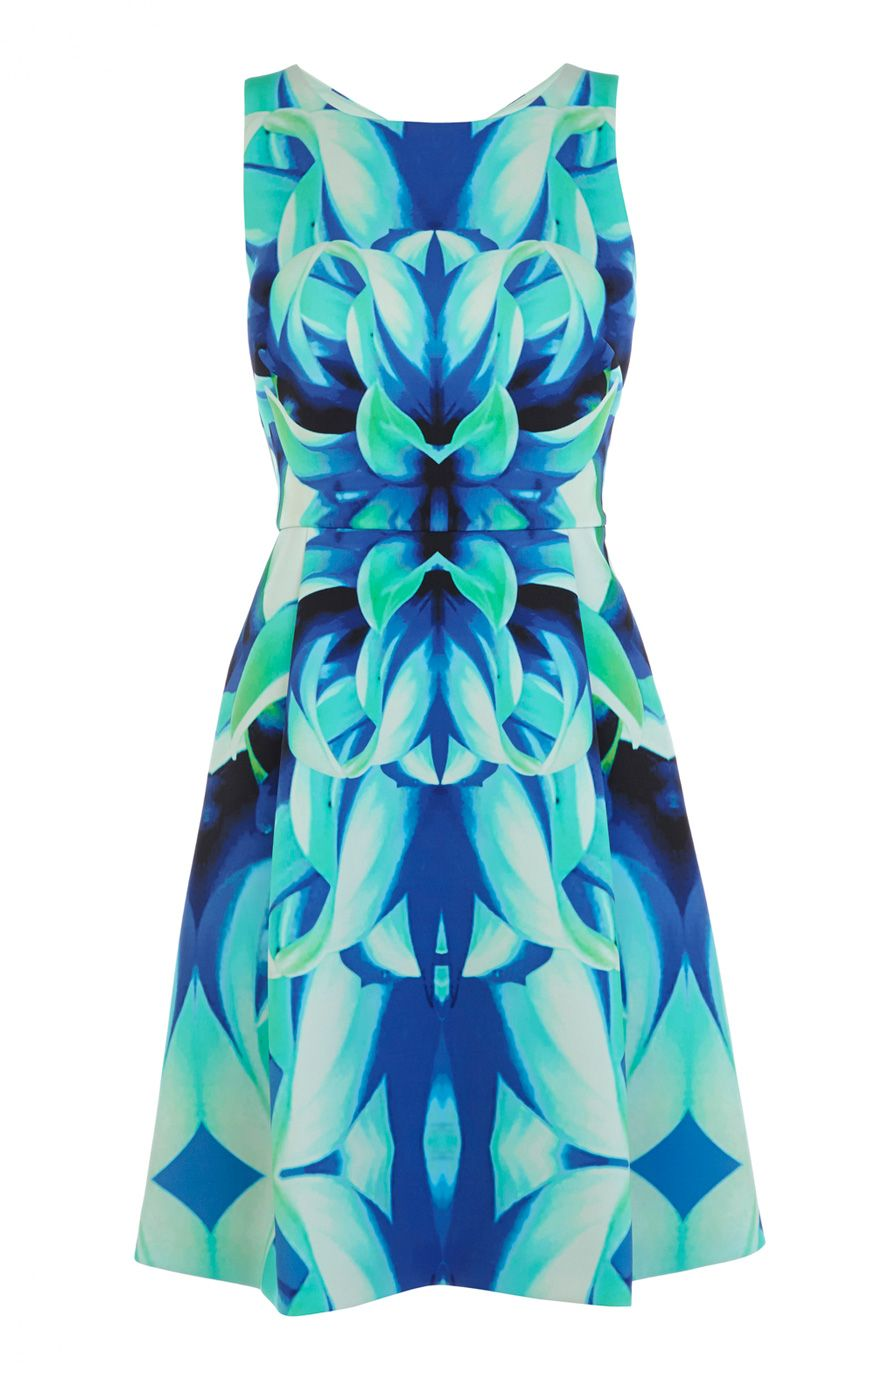 Bold floral print sculpted jersey dress | Luxury Women\'s brights ...